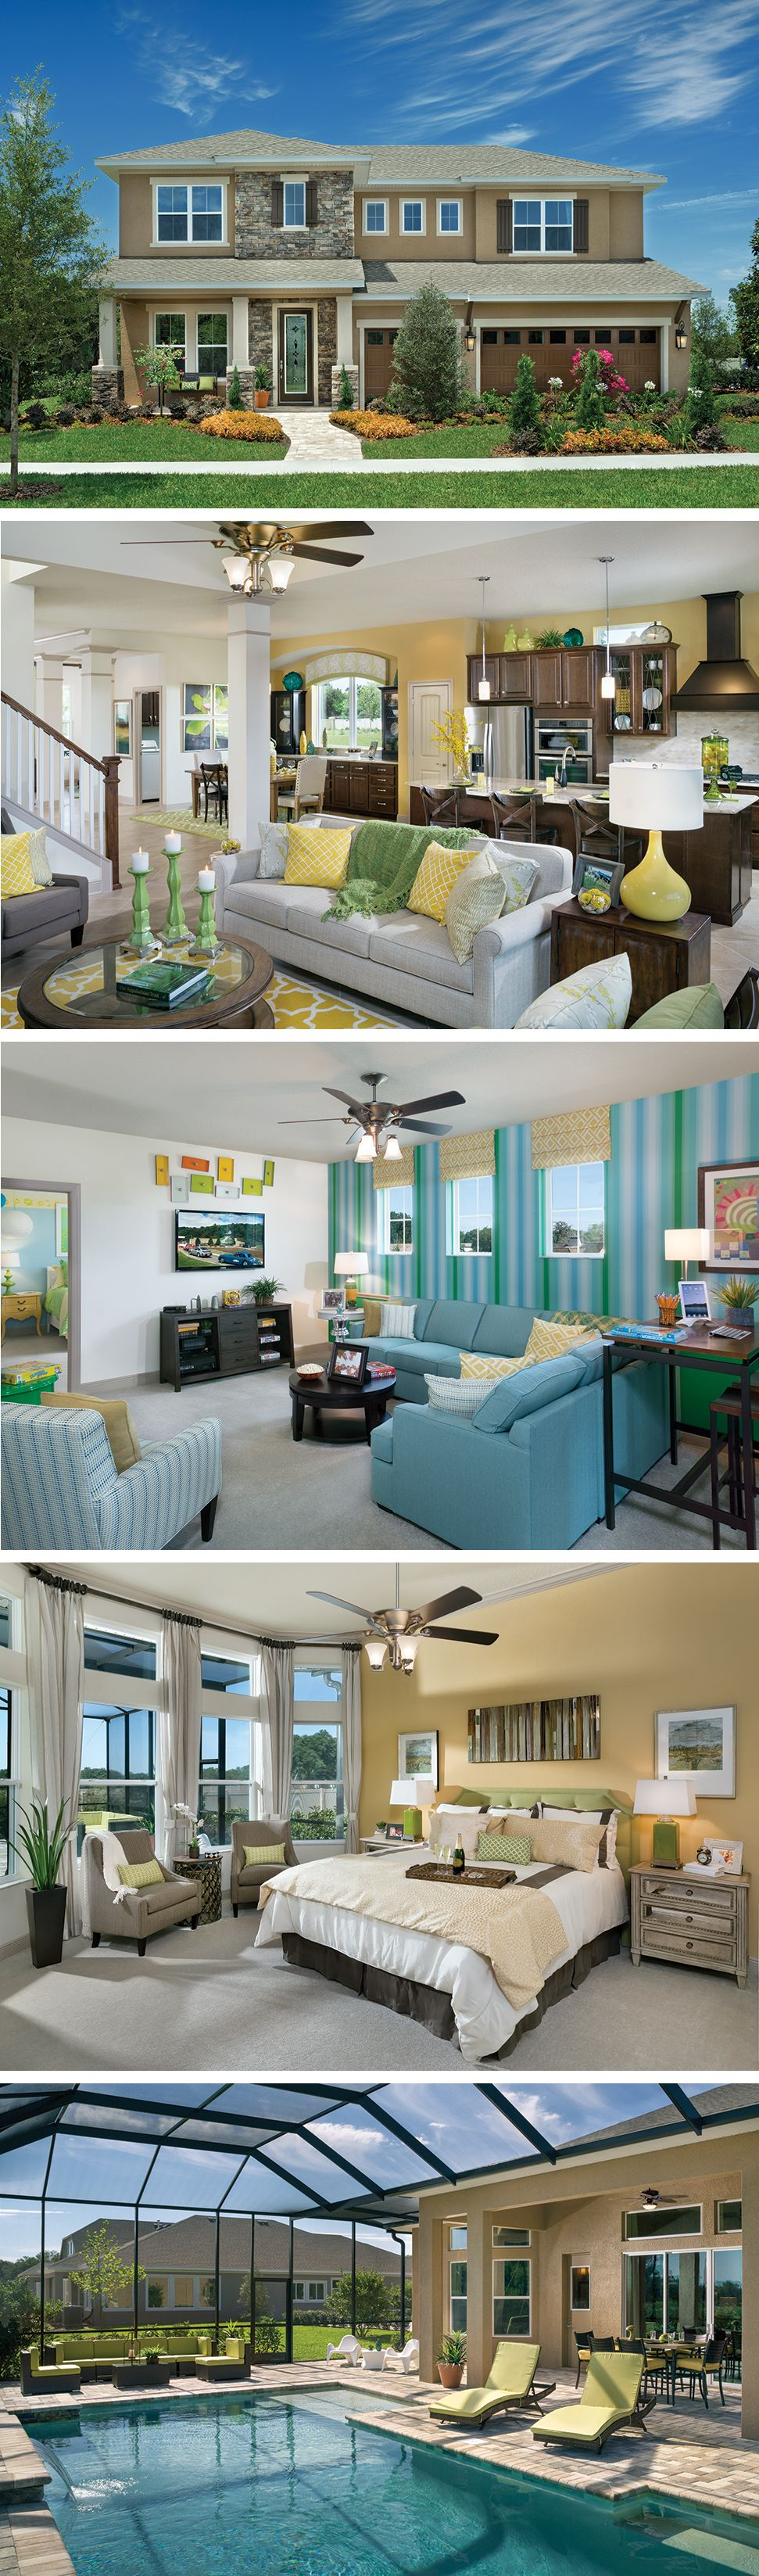 The Norchester by David Weekley Homes in